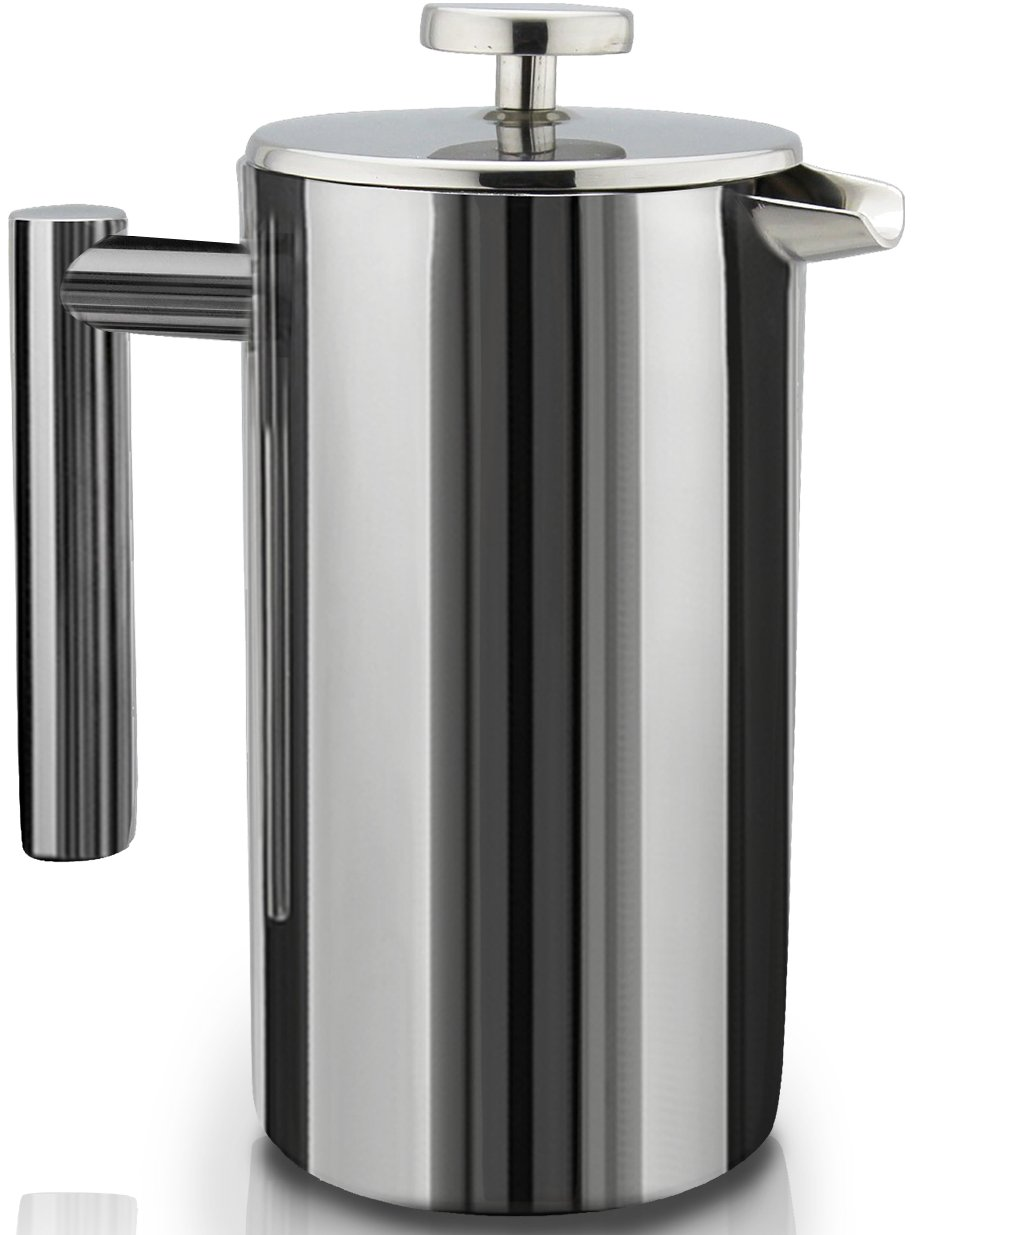 SterlingPro Double Wall Stainless Steel French Coffee Press 1.745L (59 oz)